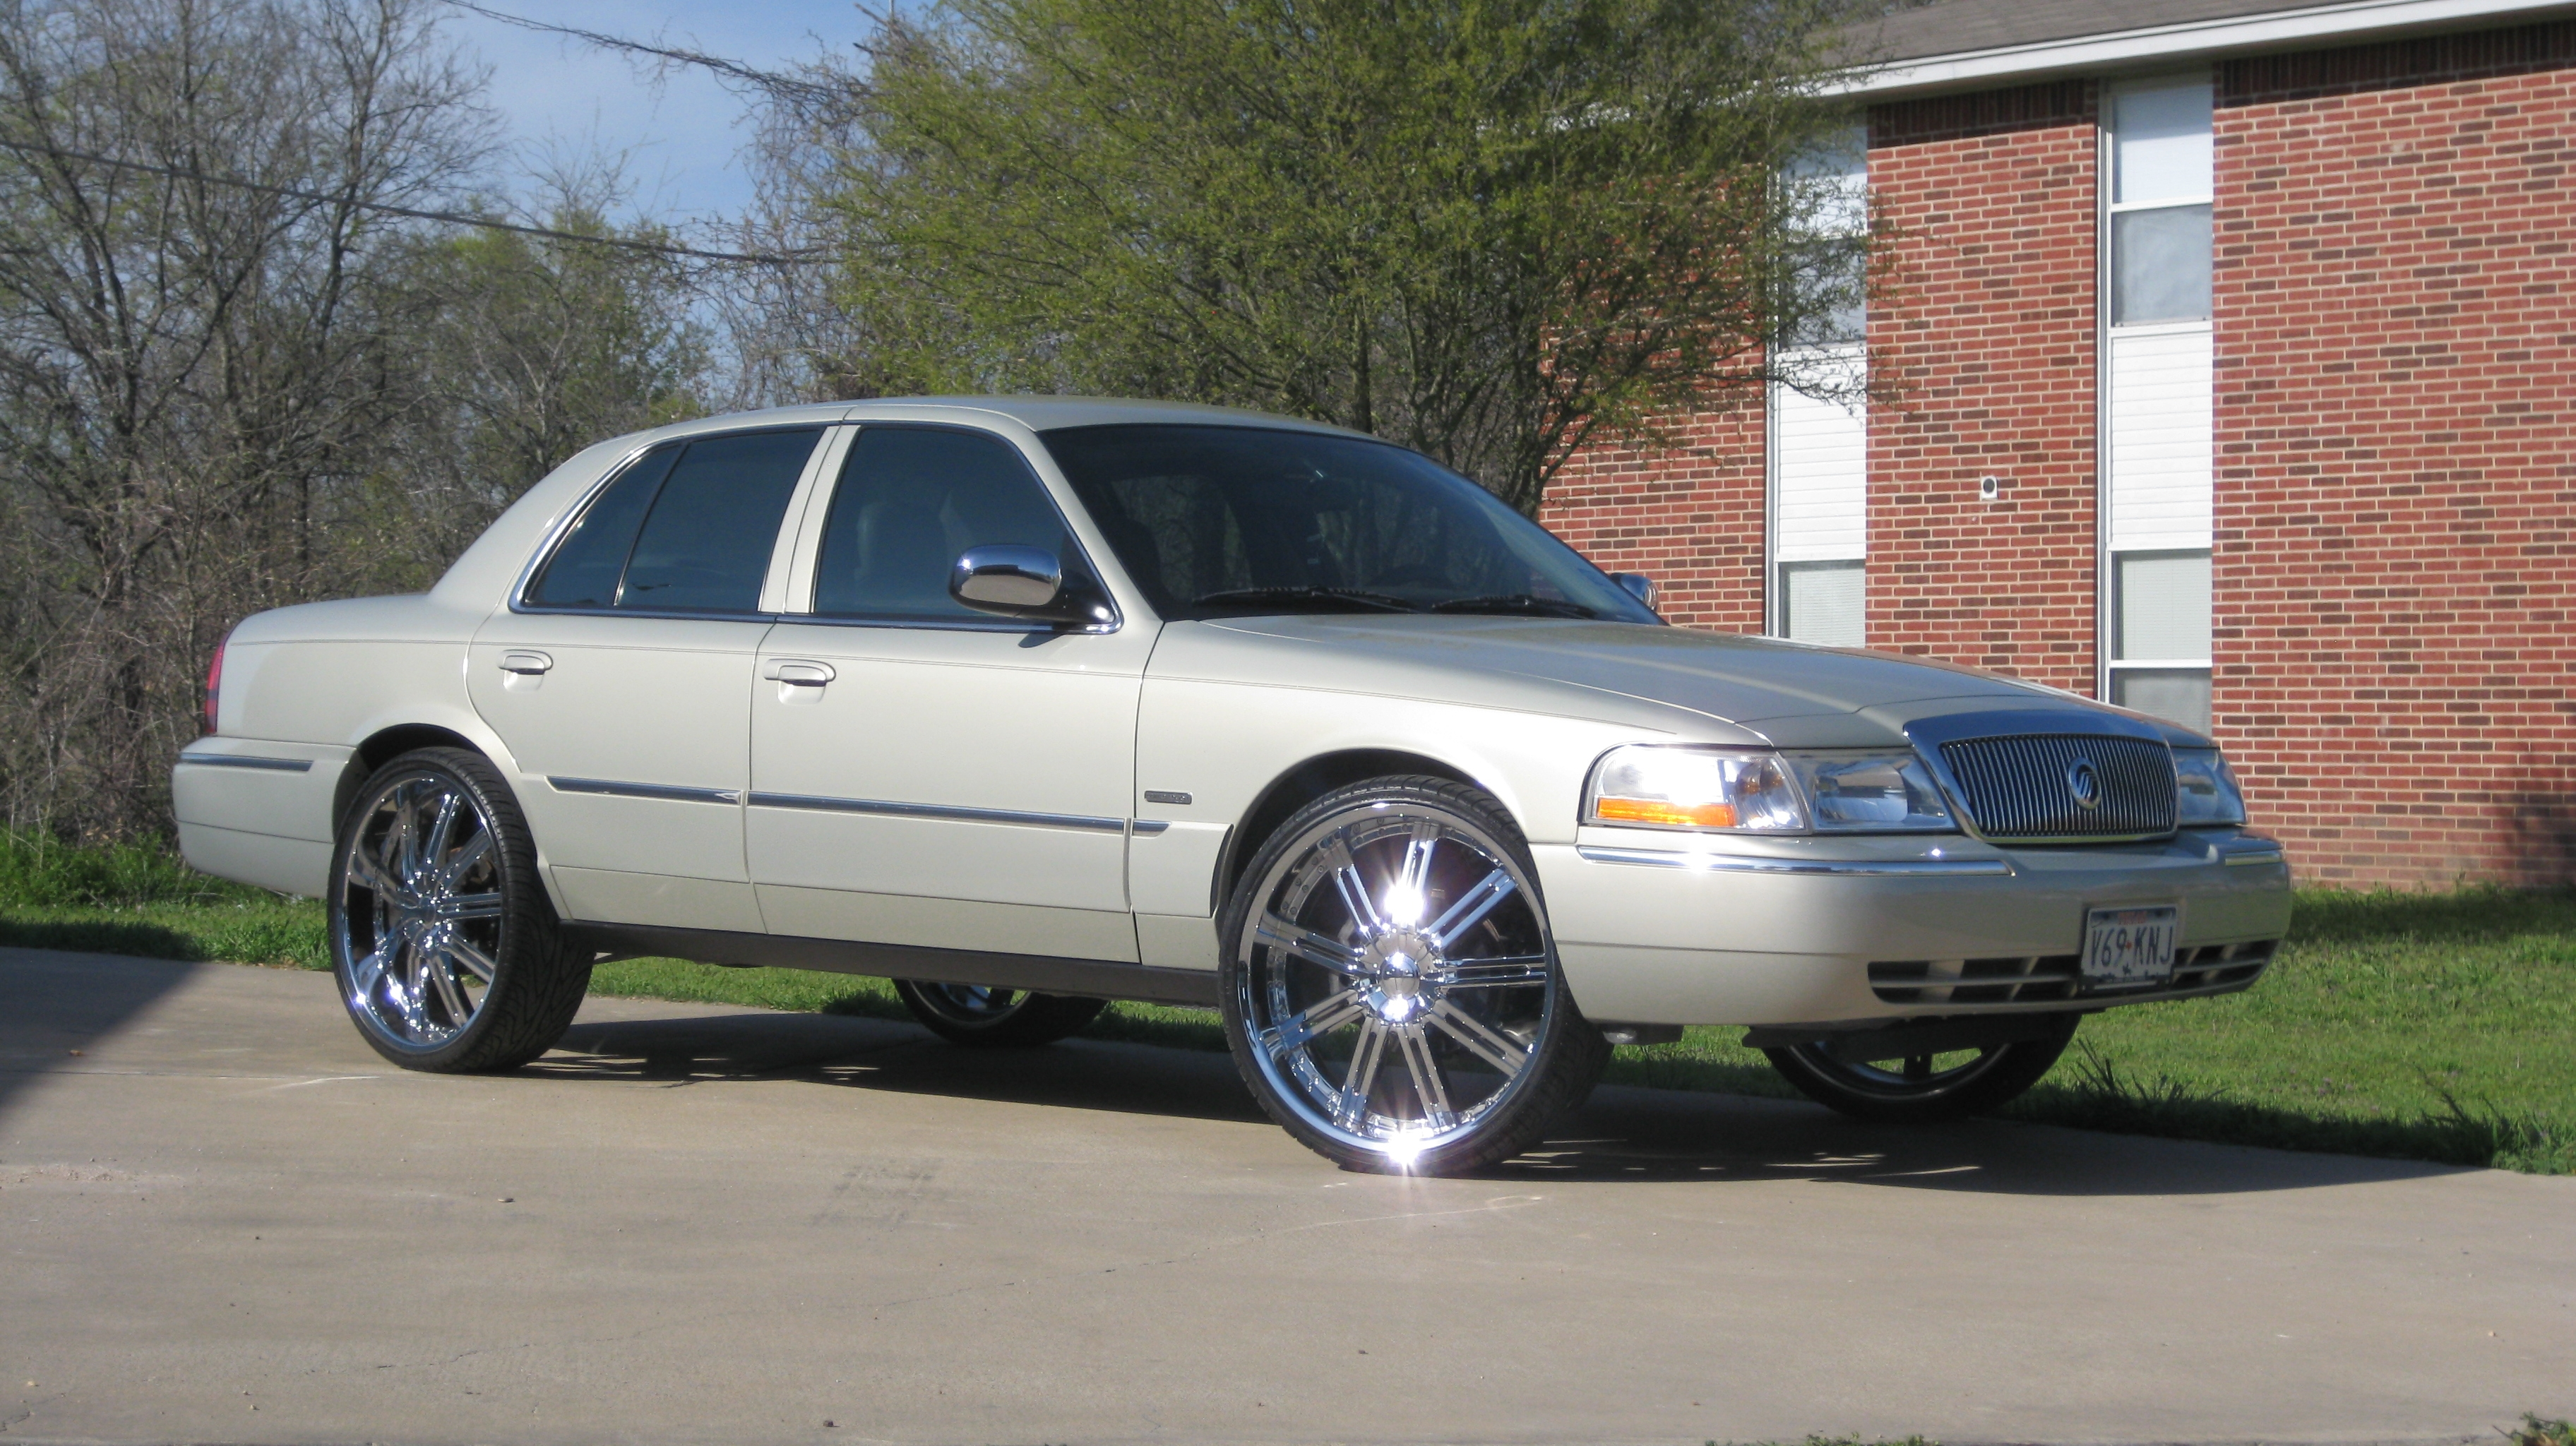 199947 39 s 2003 mercury grand marquis in waco tx. Black Bedroom Furniture Sets. Home Design Ideas